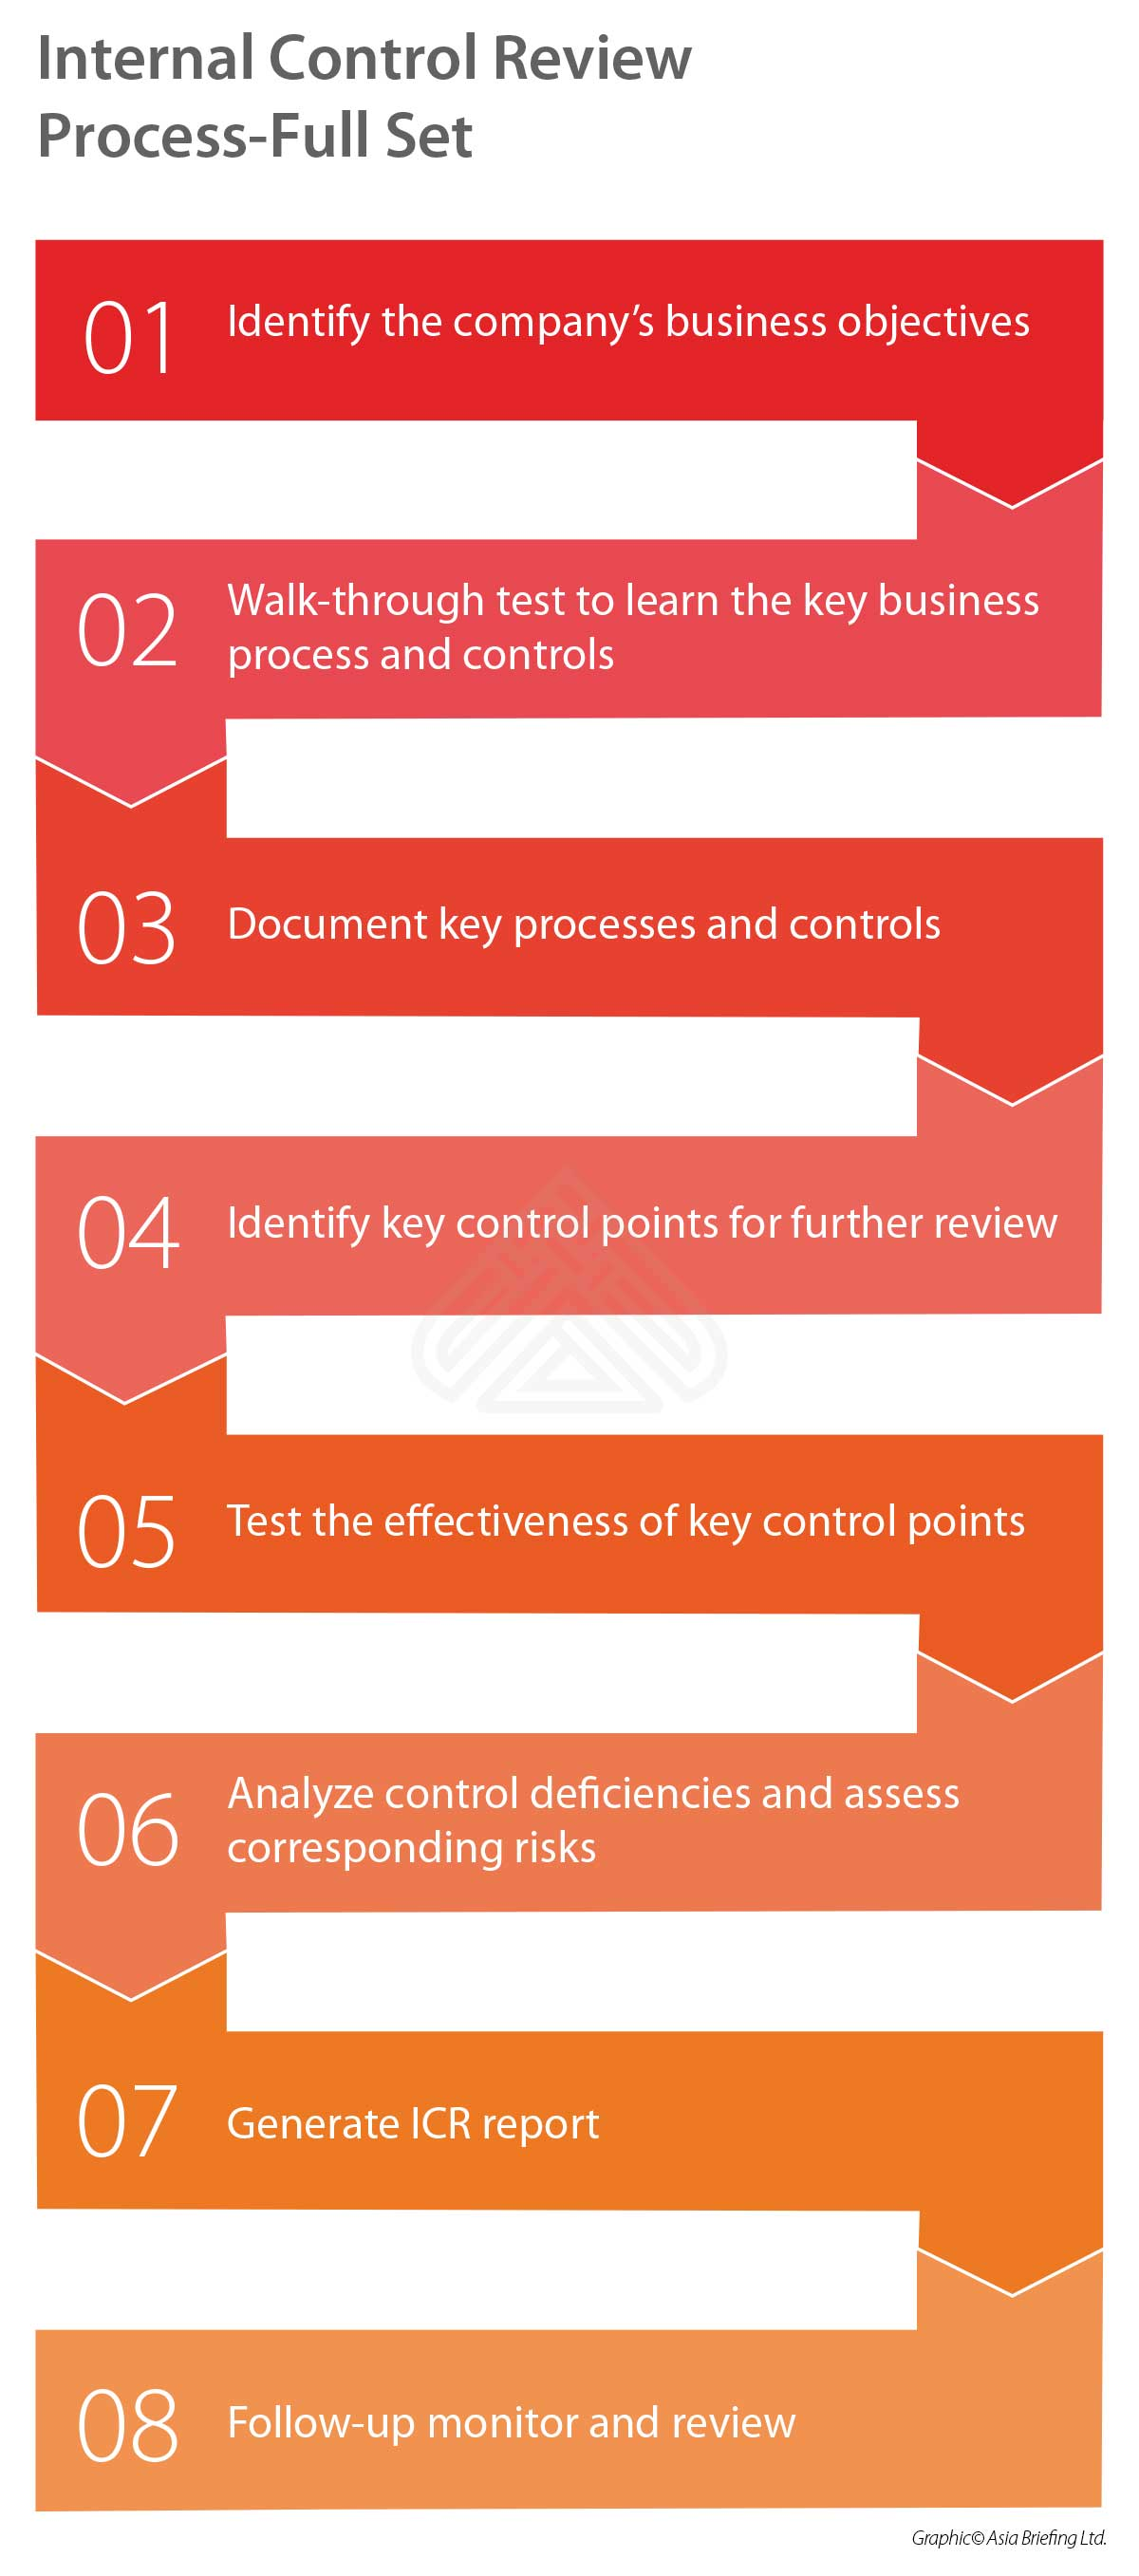 Internal Control Review Process